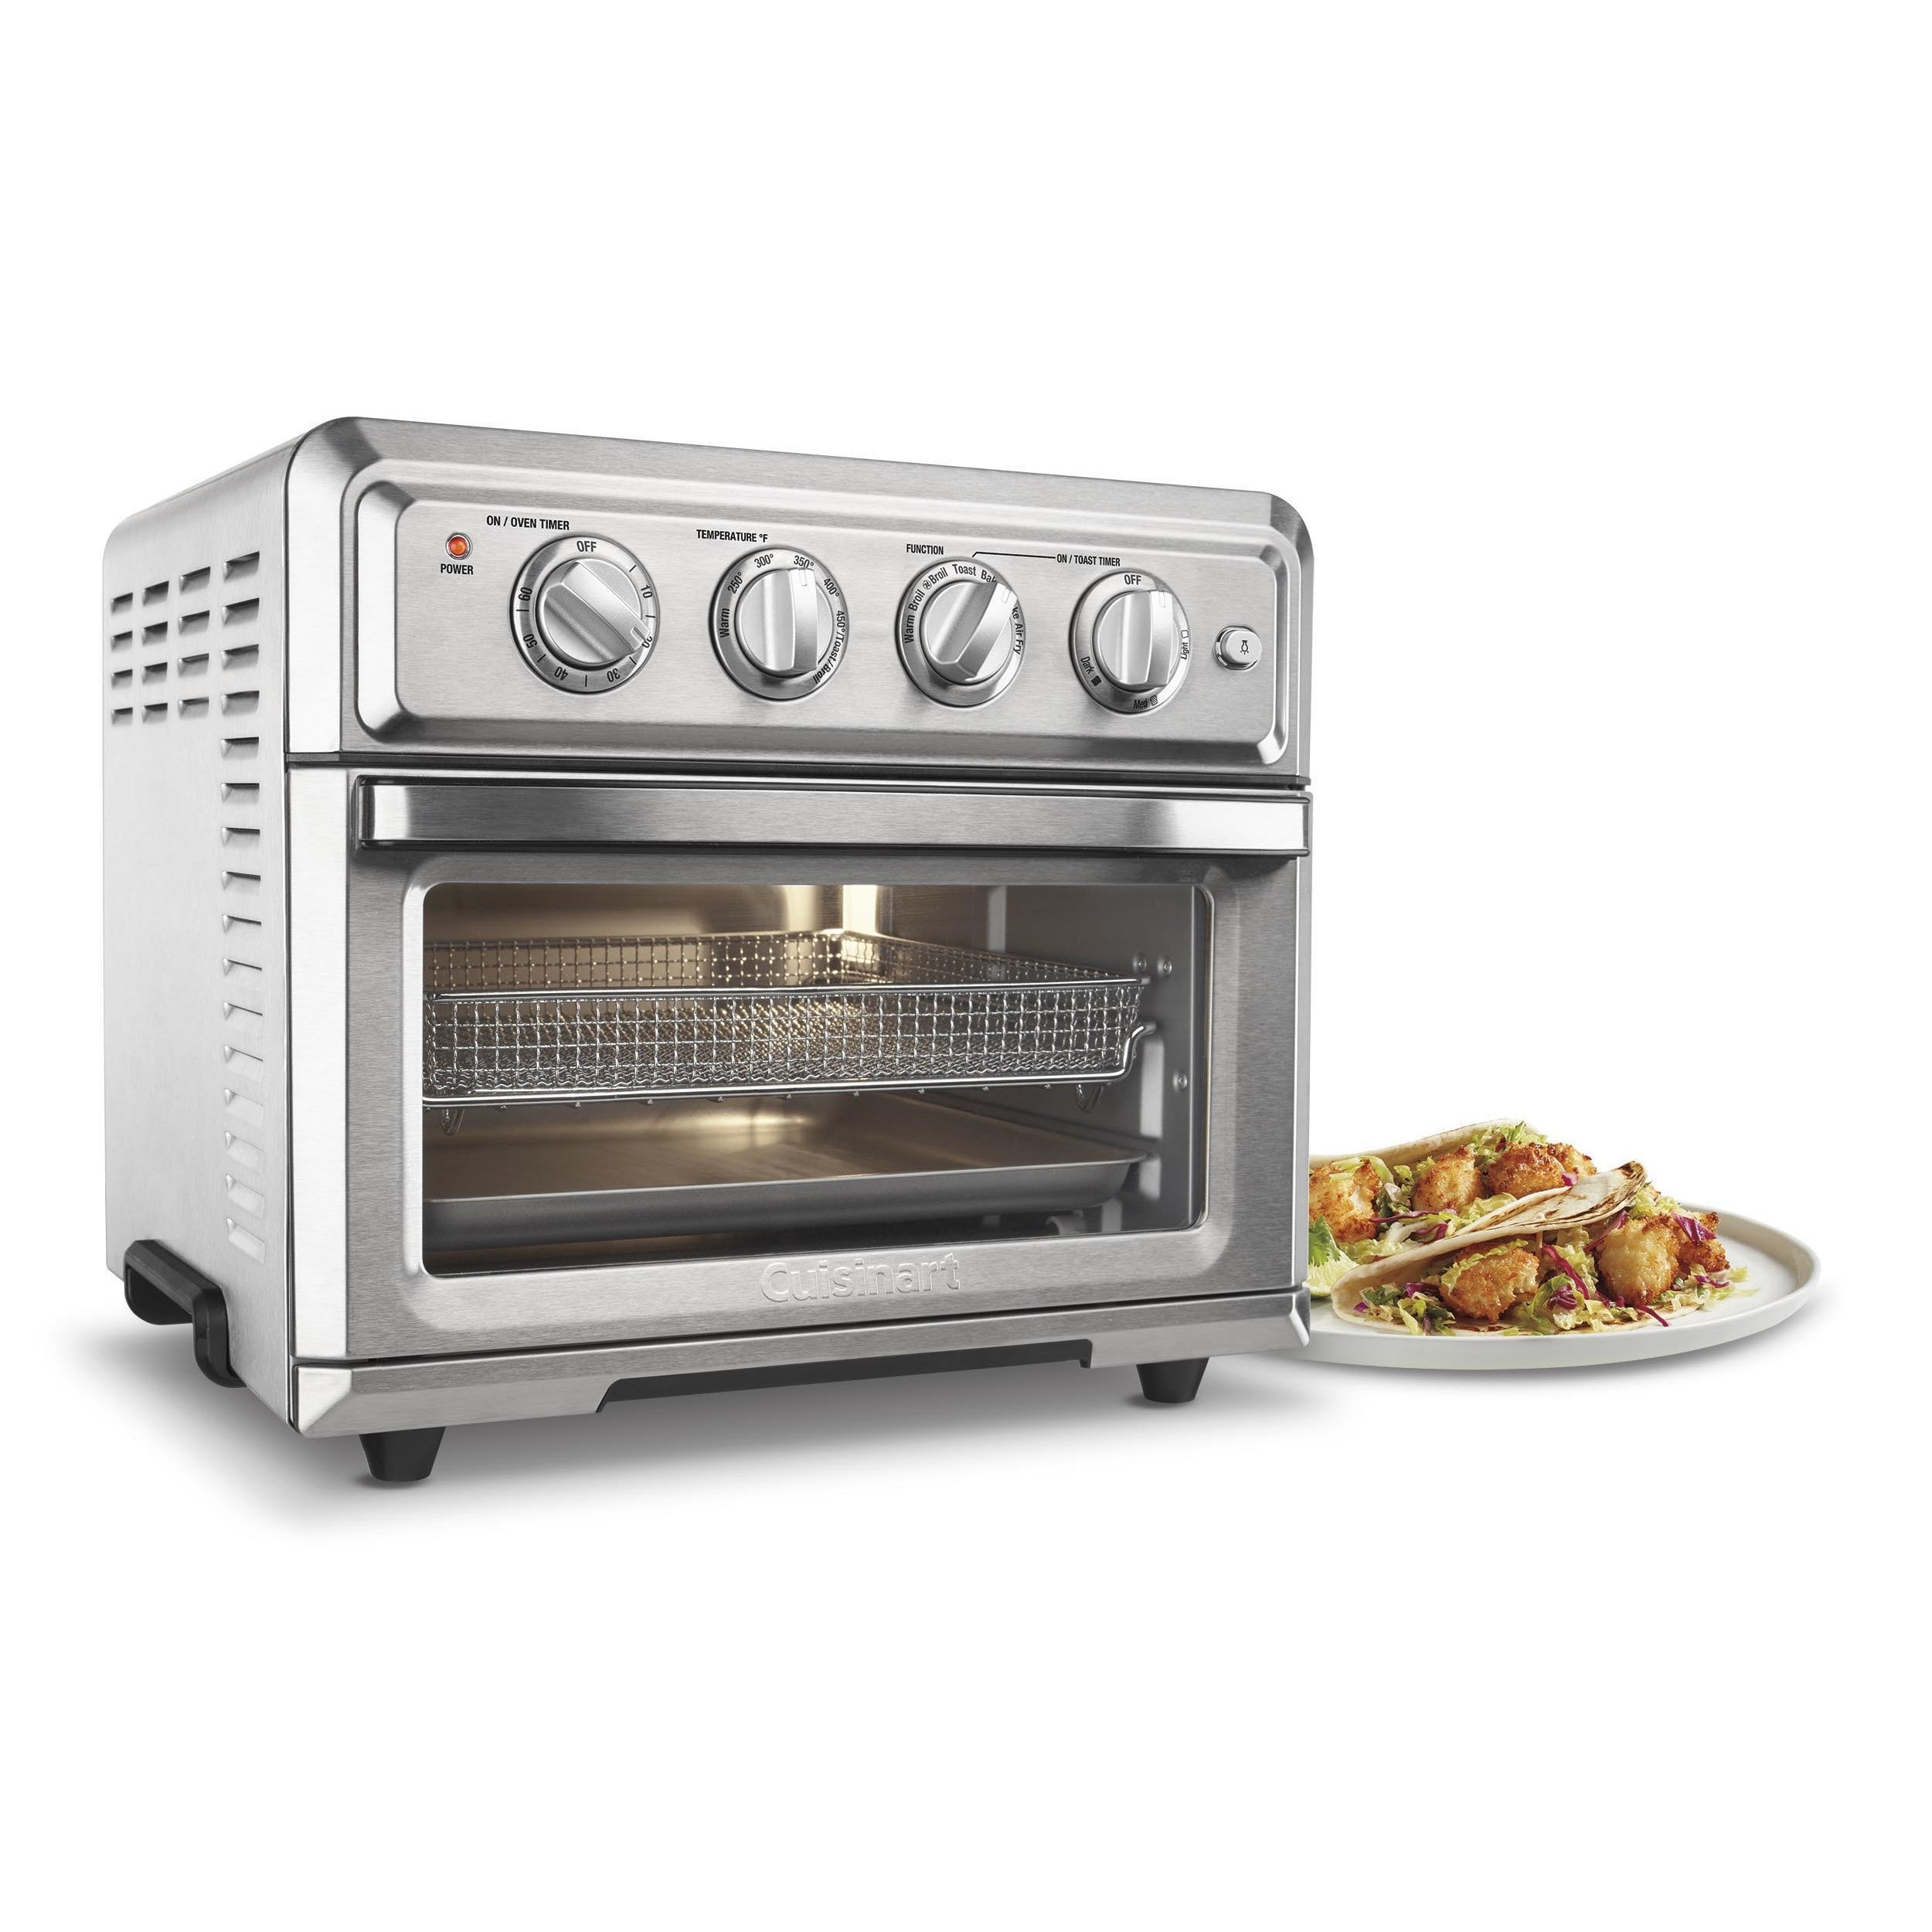 microwave slot toaster convection pizza dk combo natural home ideal rotisserie garage oven plus breville to rack